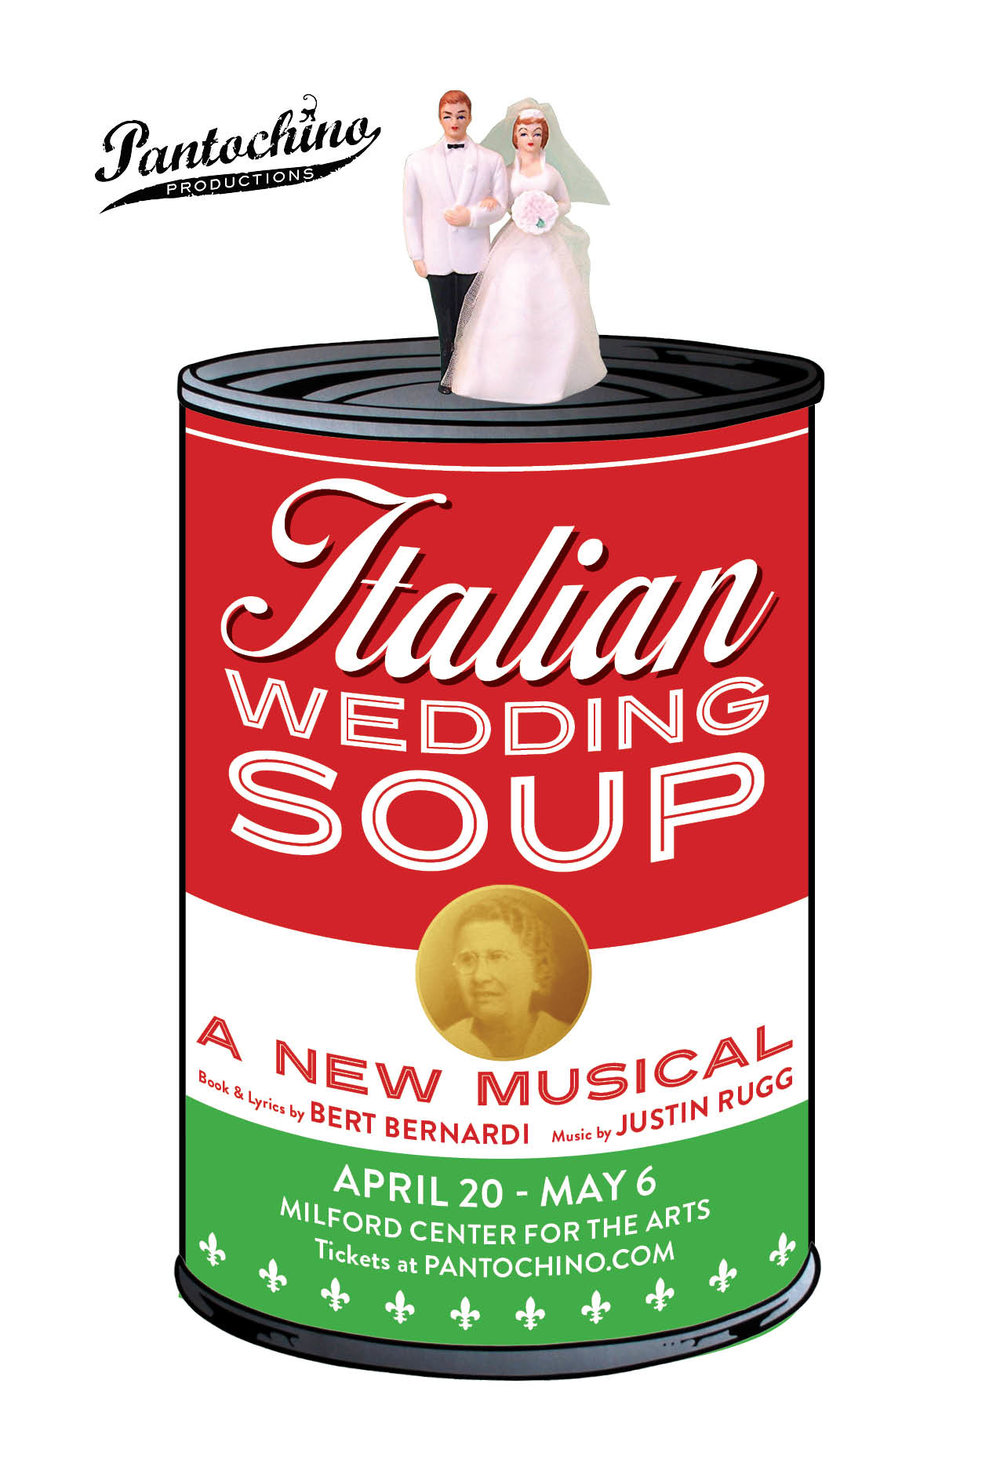 ItalianWeddingSoup_A.jpg